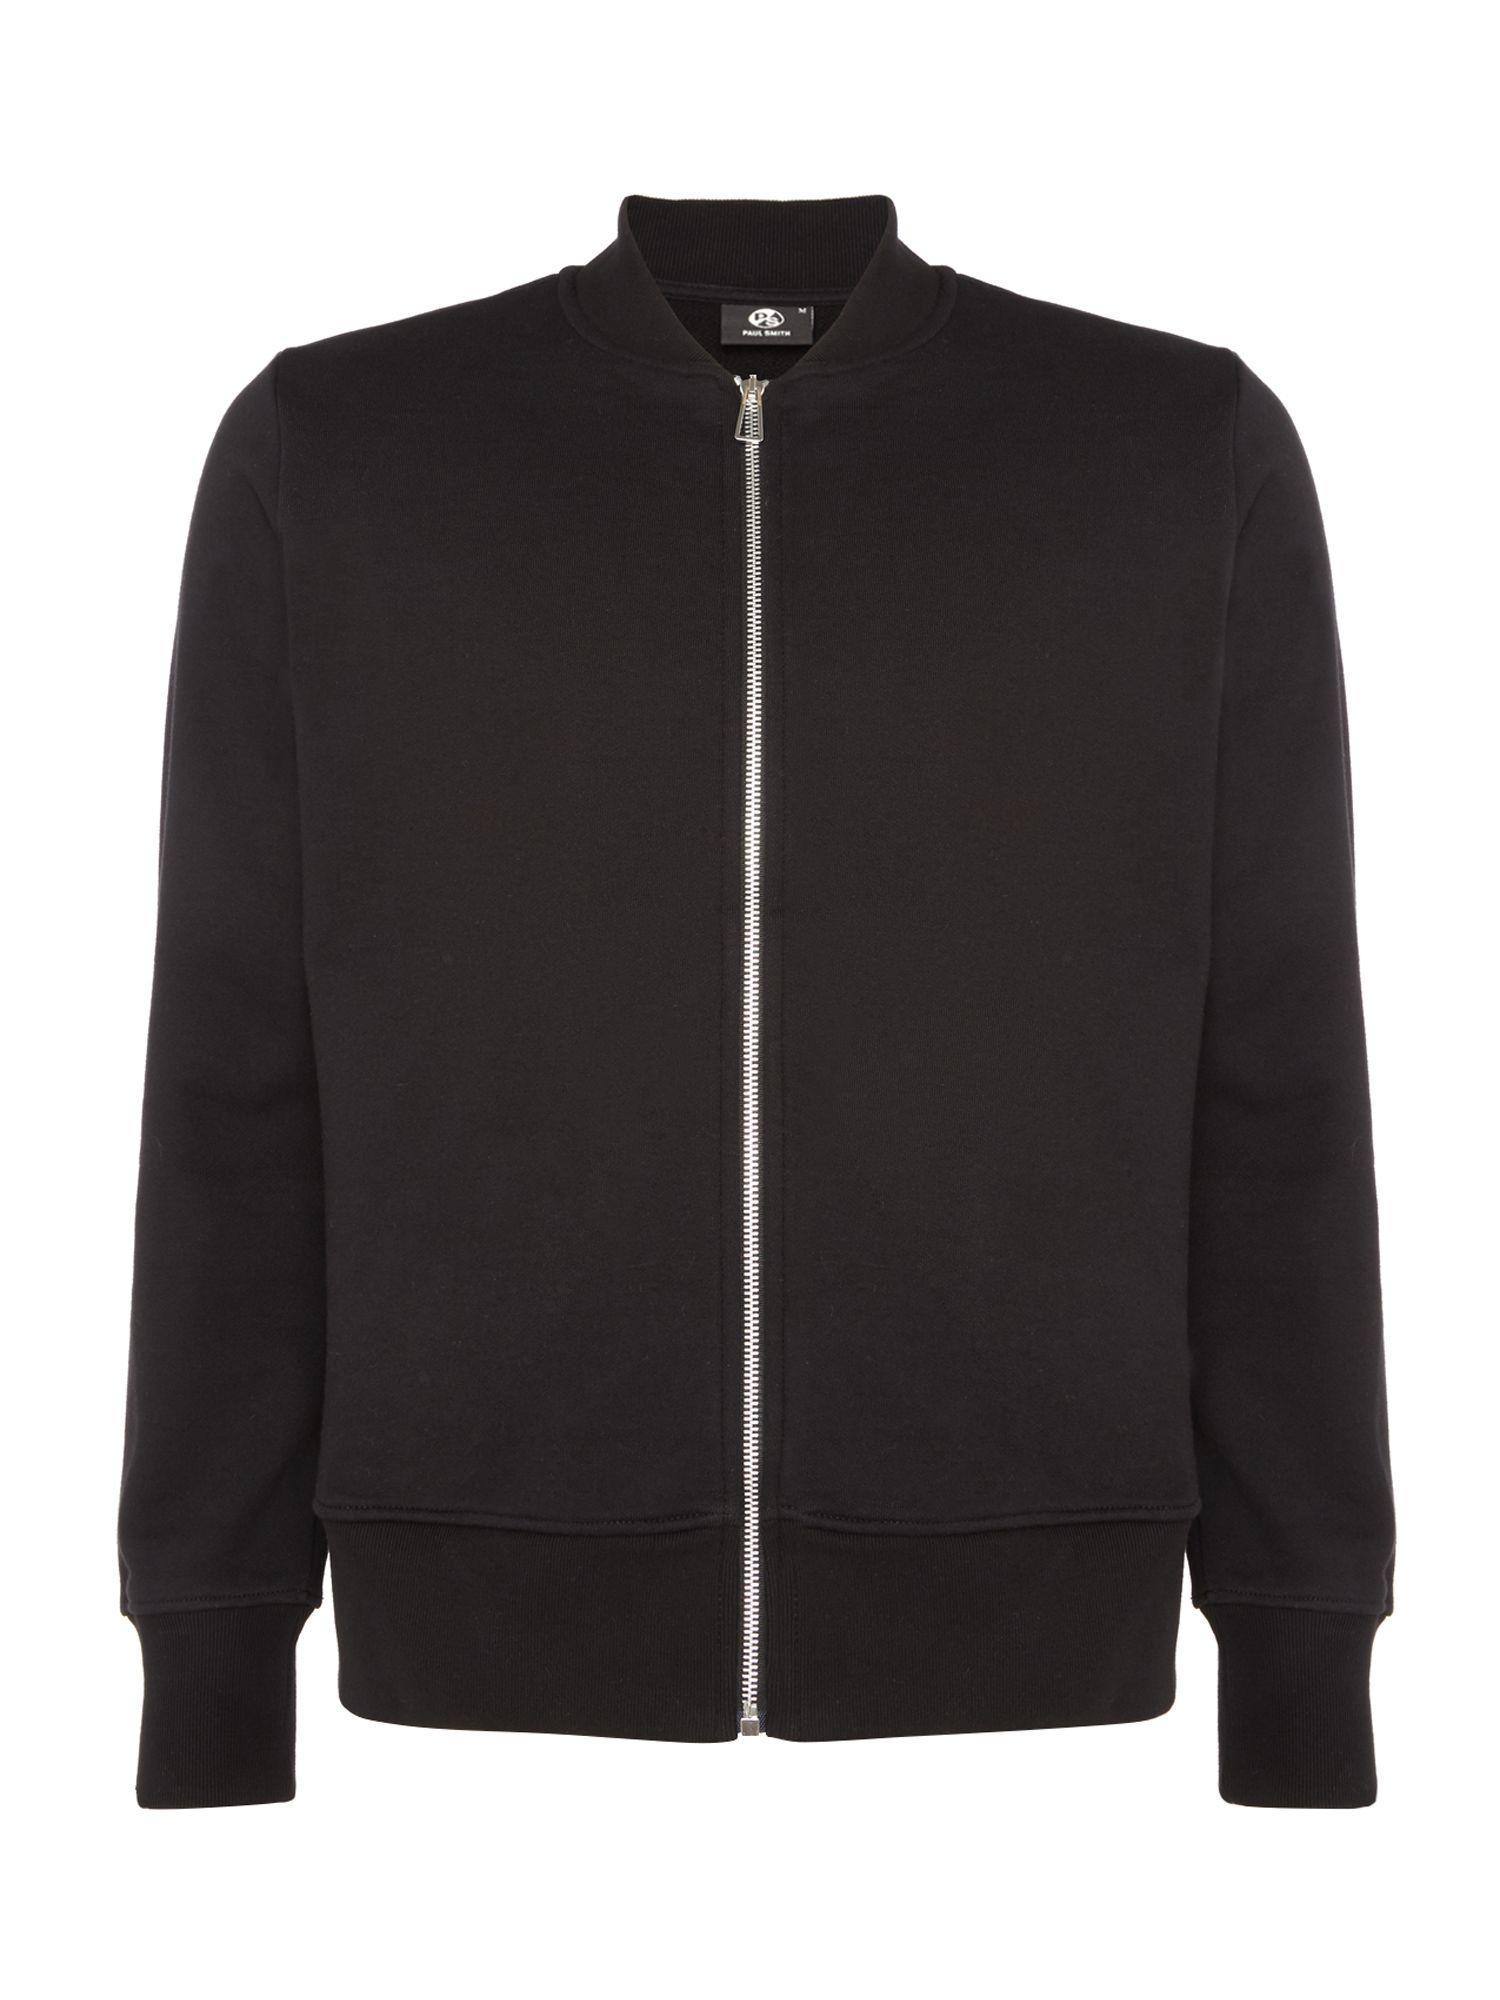 Men's PS By Paul Smith Zip-up sweat bomber jacket, Black